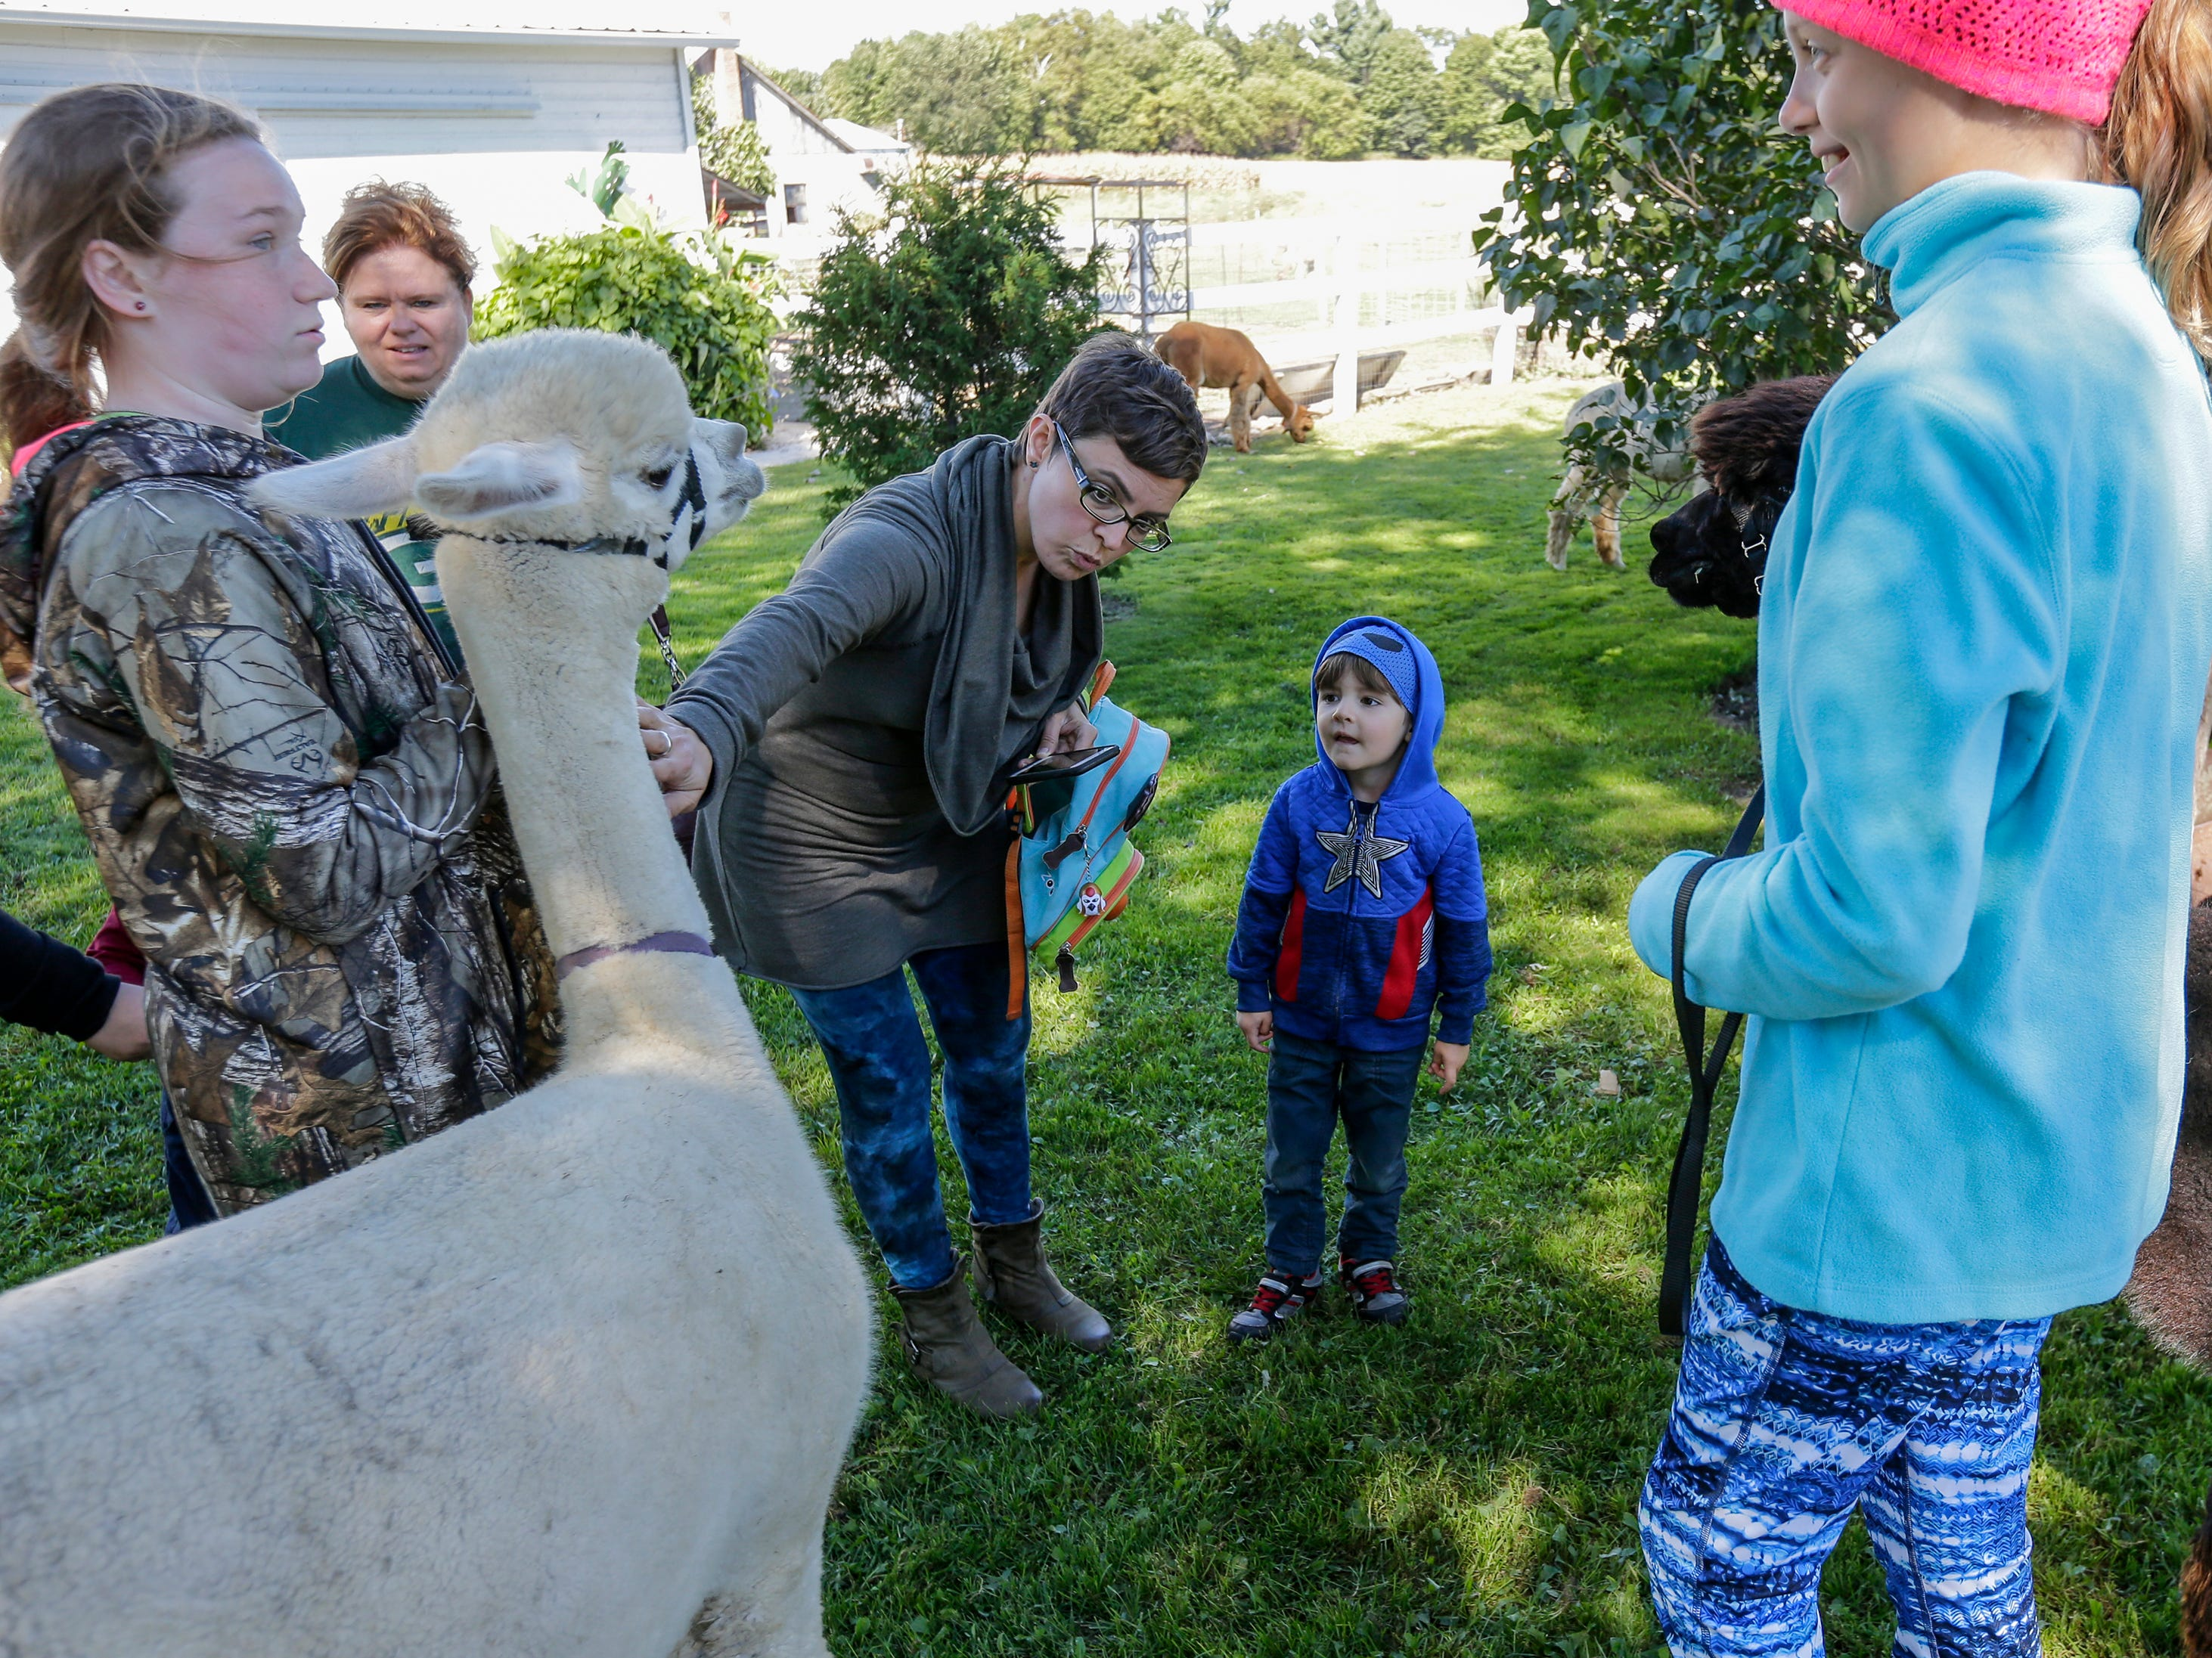 Erica Haven, of Port Washington, shows her son Everett, 3, how to pet an alpaca during National Alpaca Days at LondonDairy Alpaca Ranch Saturday, September 22, 2018, in Two Rivers, Wis. Josh Clark/USA TODAY NETWORK-Wisconsin